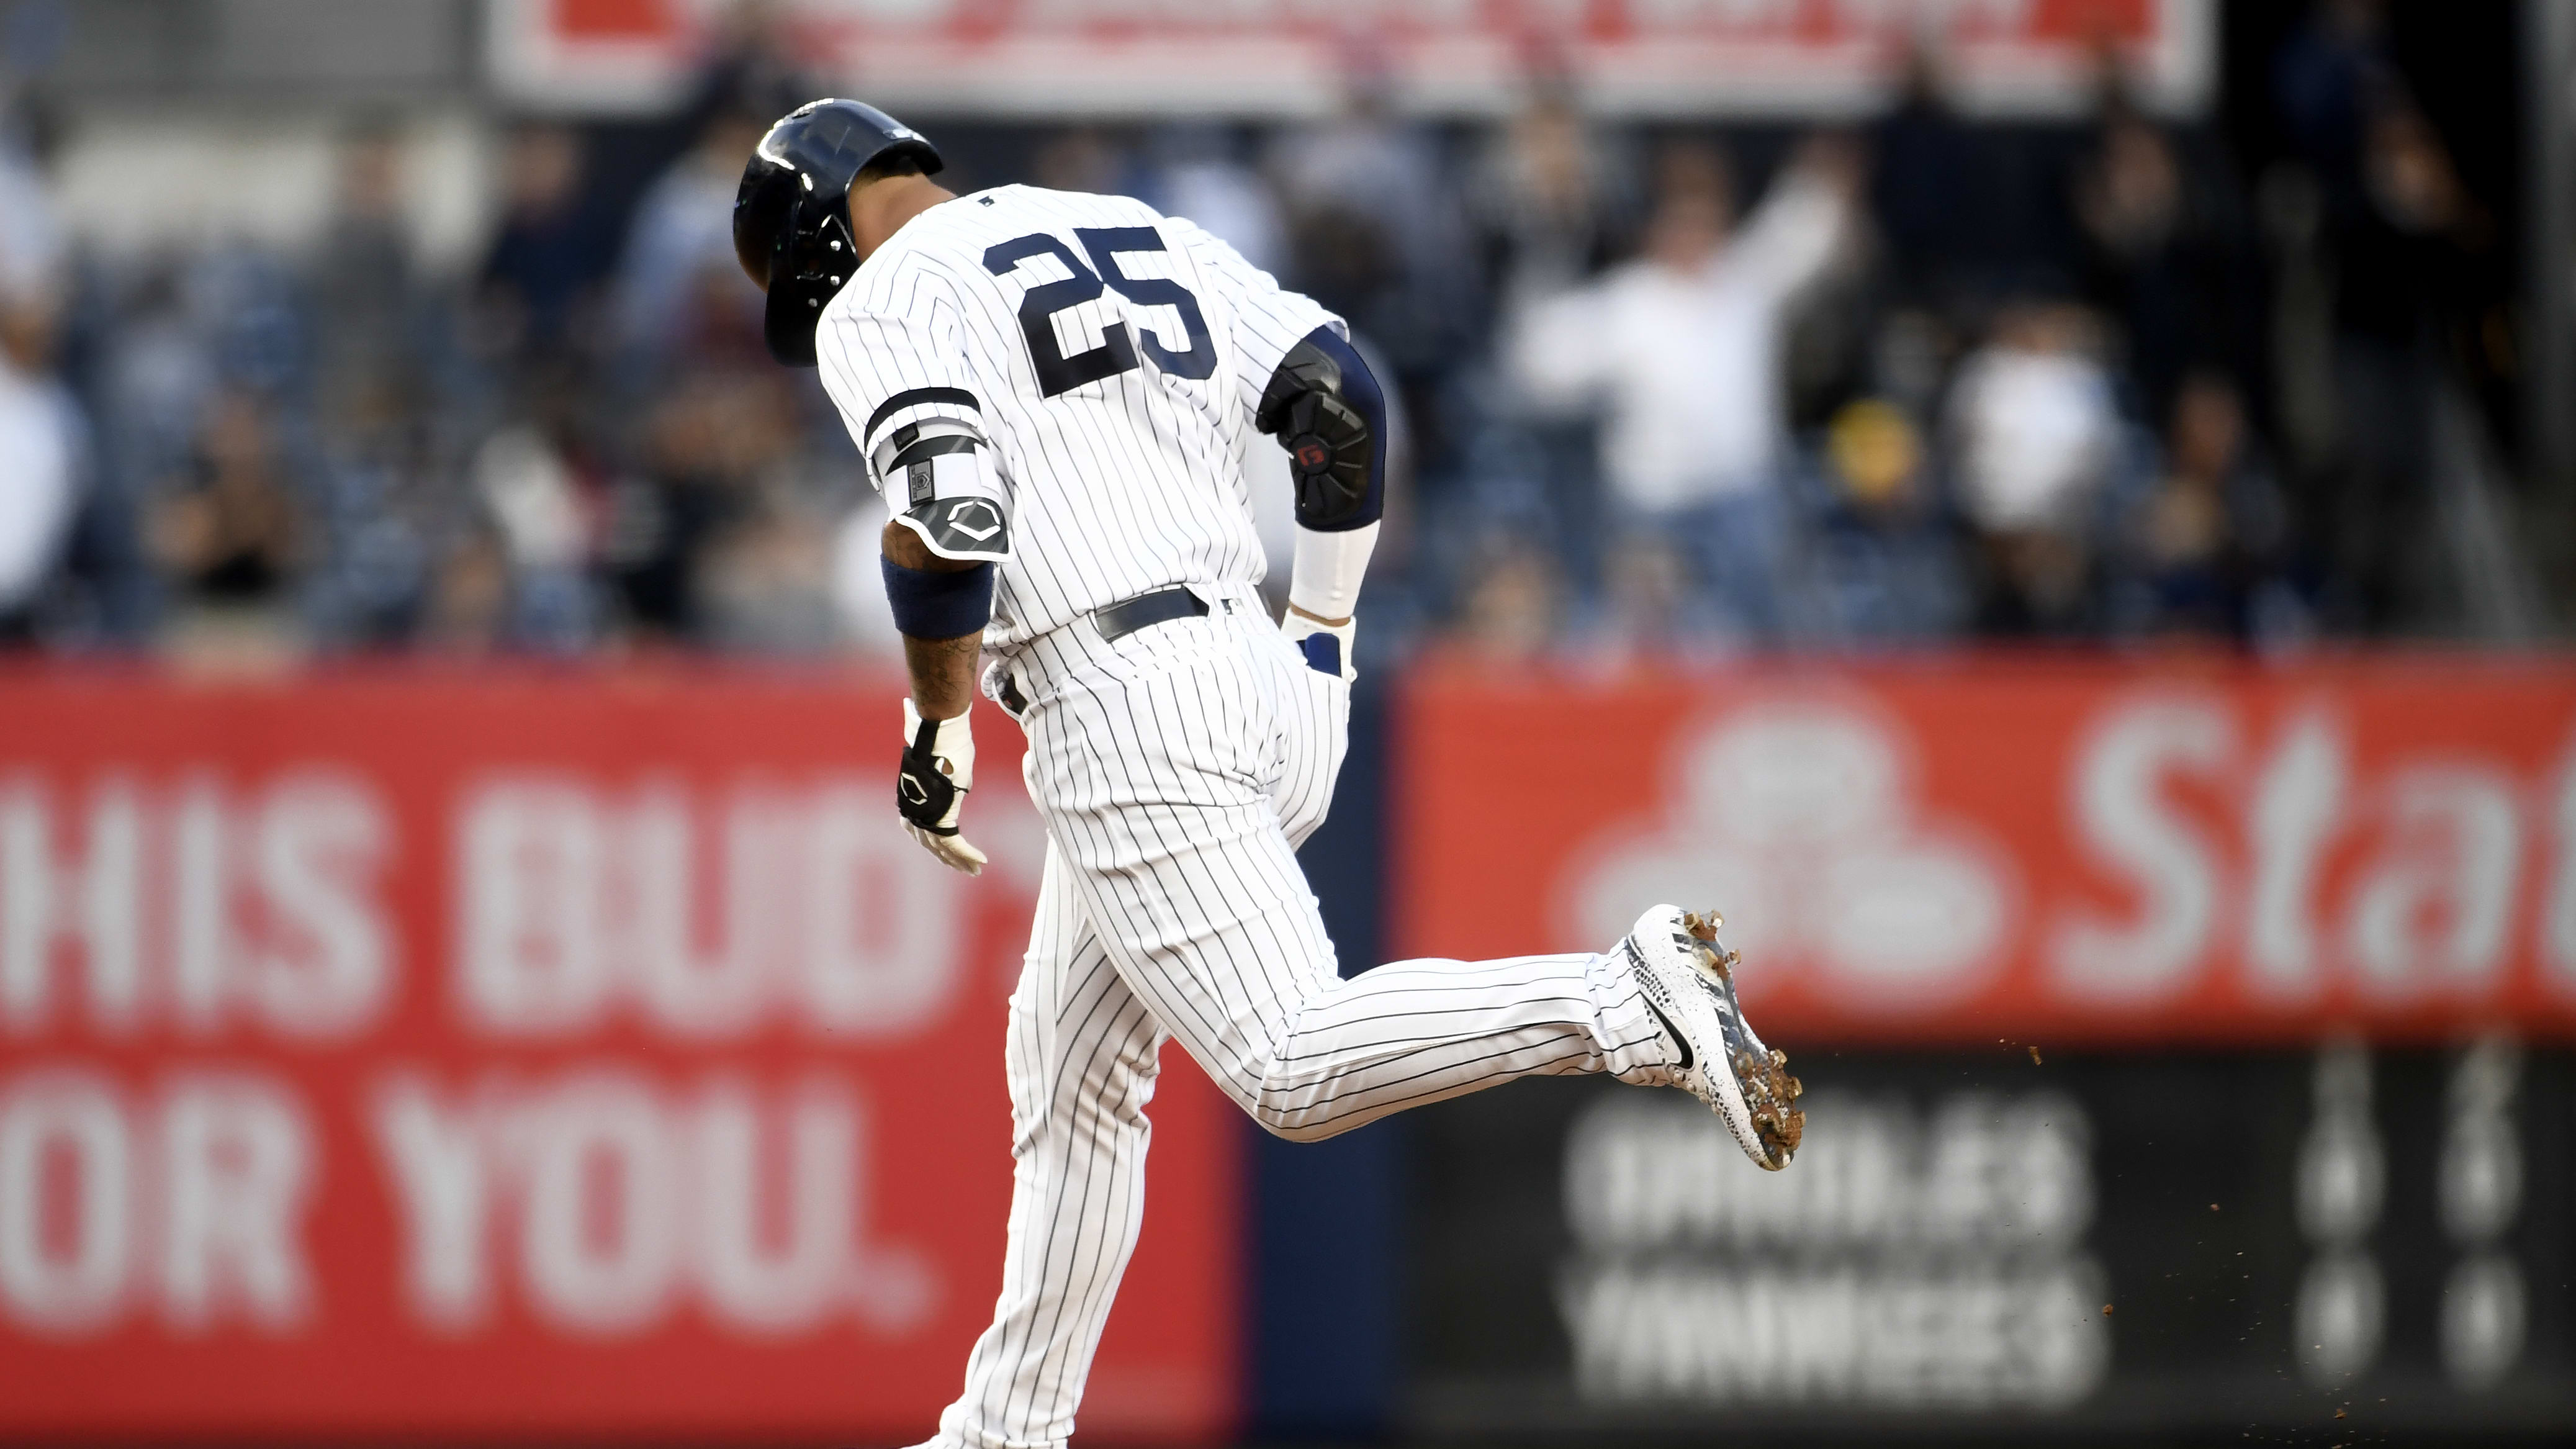 NEW YORK, NEW YORK - MAY 15: Gleyber Torres #25 of the New York Yankees runs the bases after hitting a home run during the fourth inning of game two of a double header against the Baltimore Orioles at Yankee Stadium on May 15, 2019 in the Bronx borough of New York City. (Photo by Sarah Stier/Getty Images)